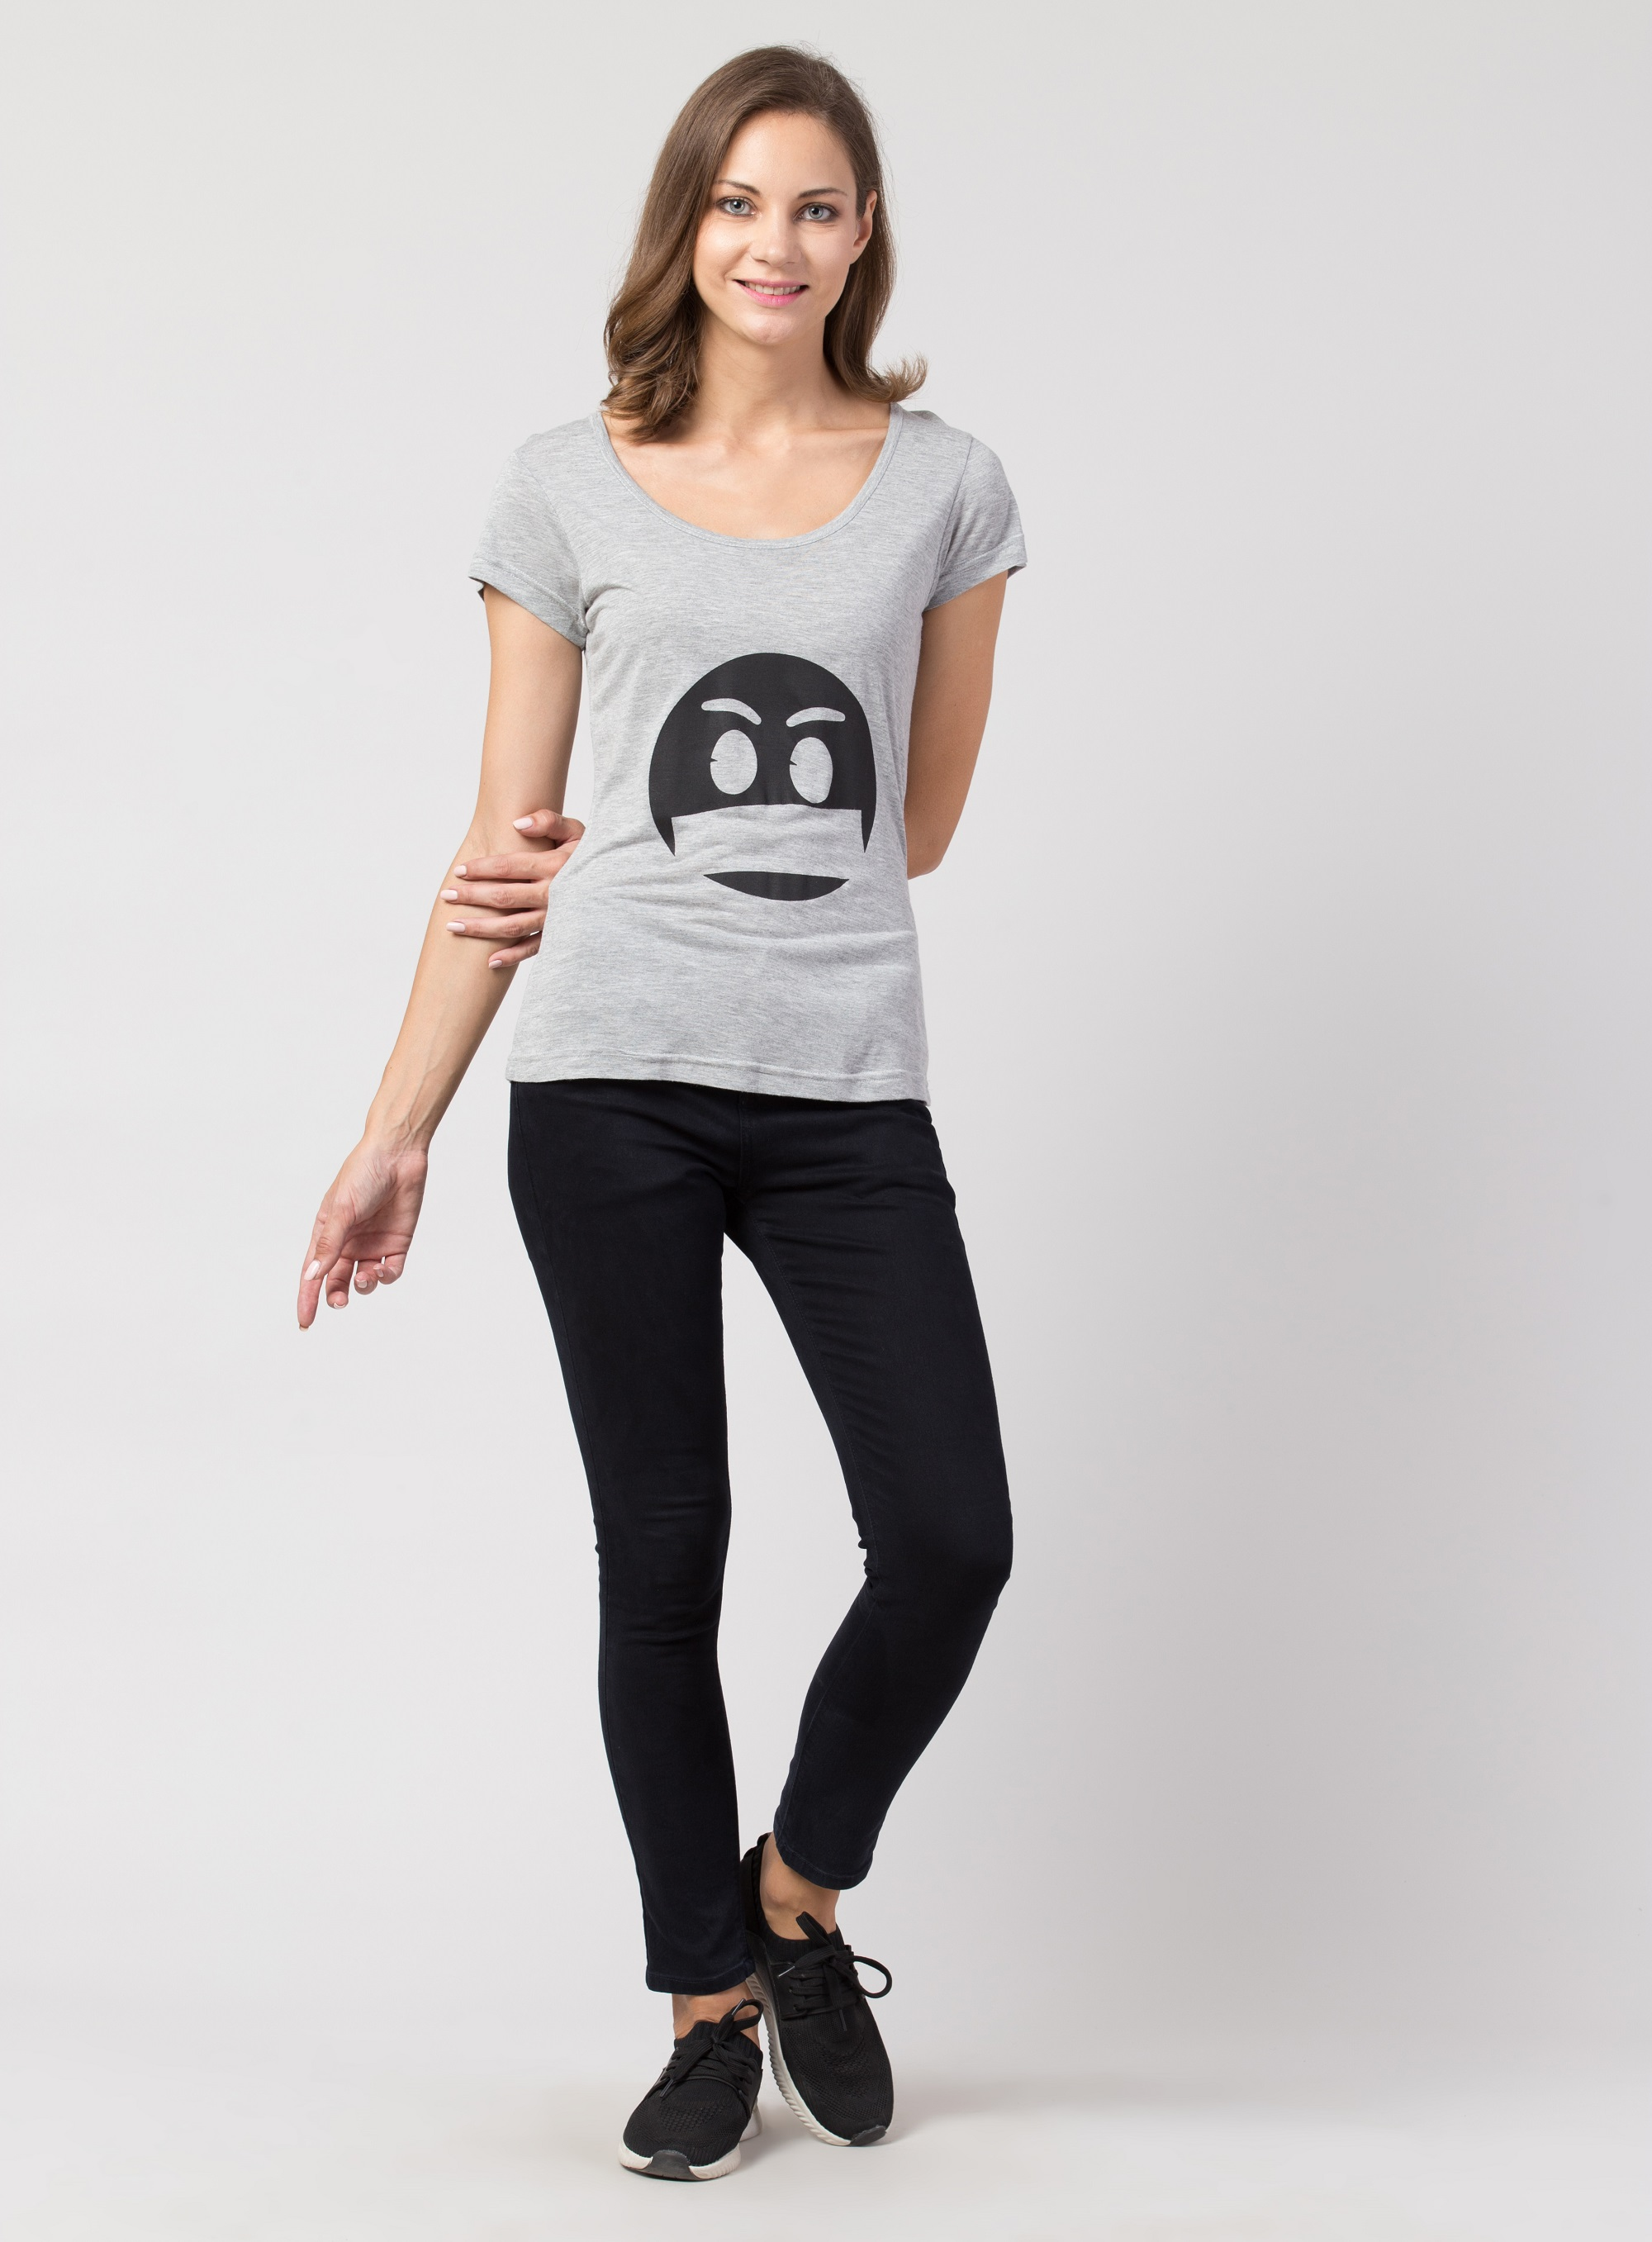 Folle Grey Tshirt With Angry Face